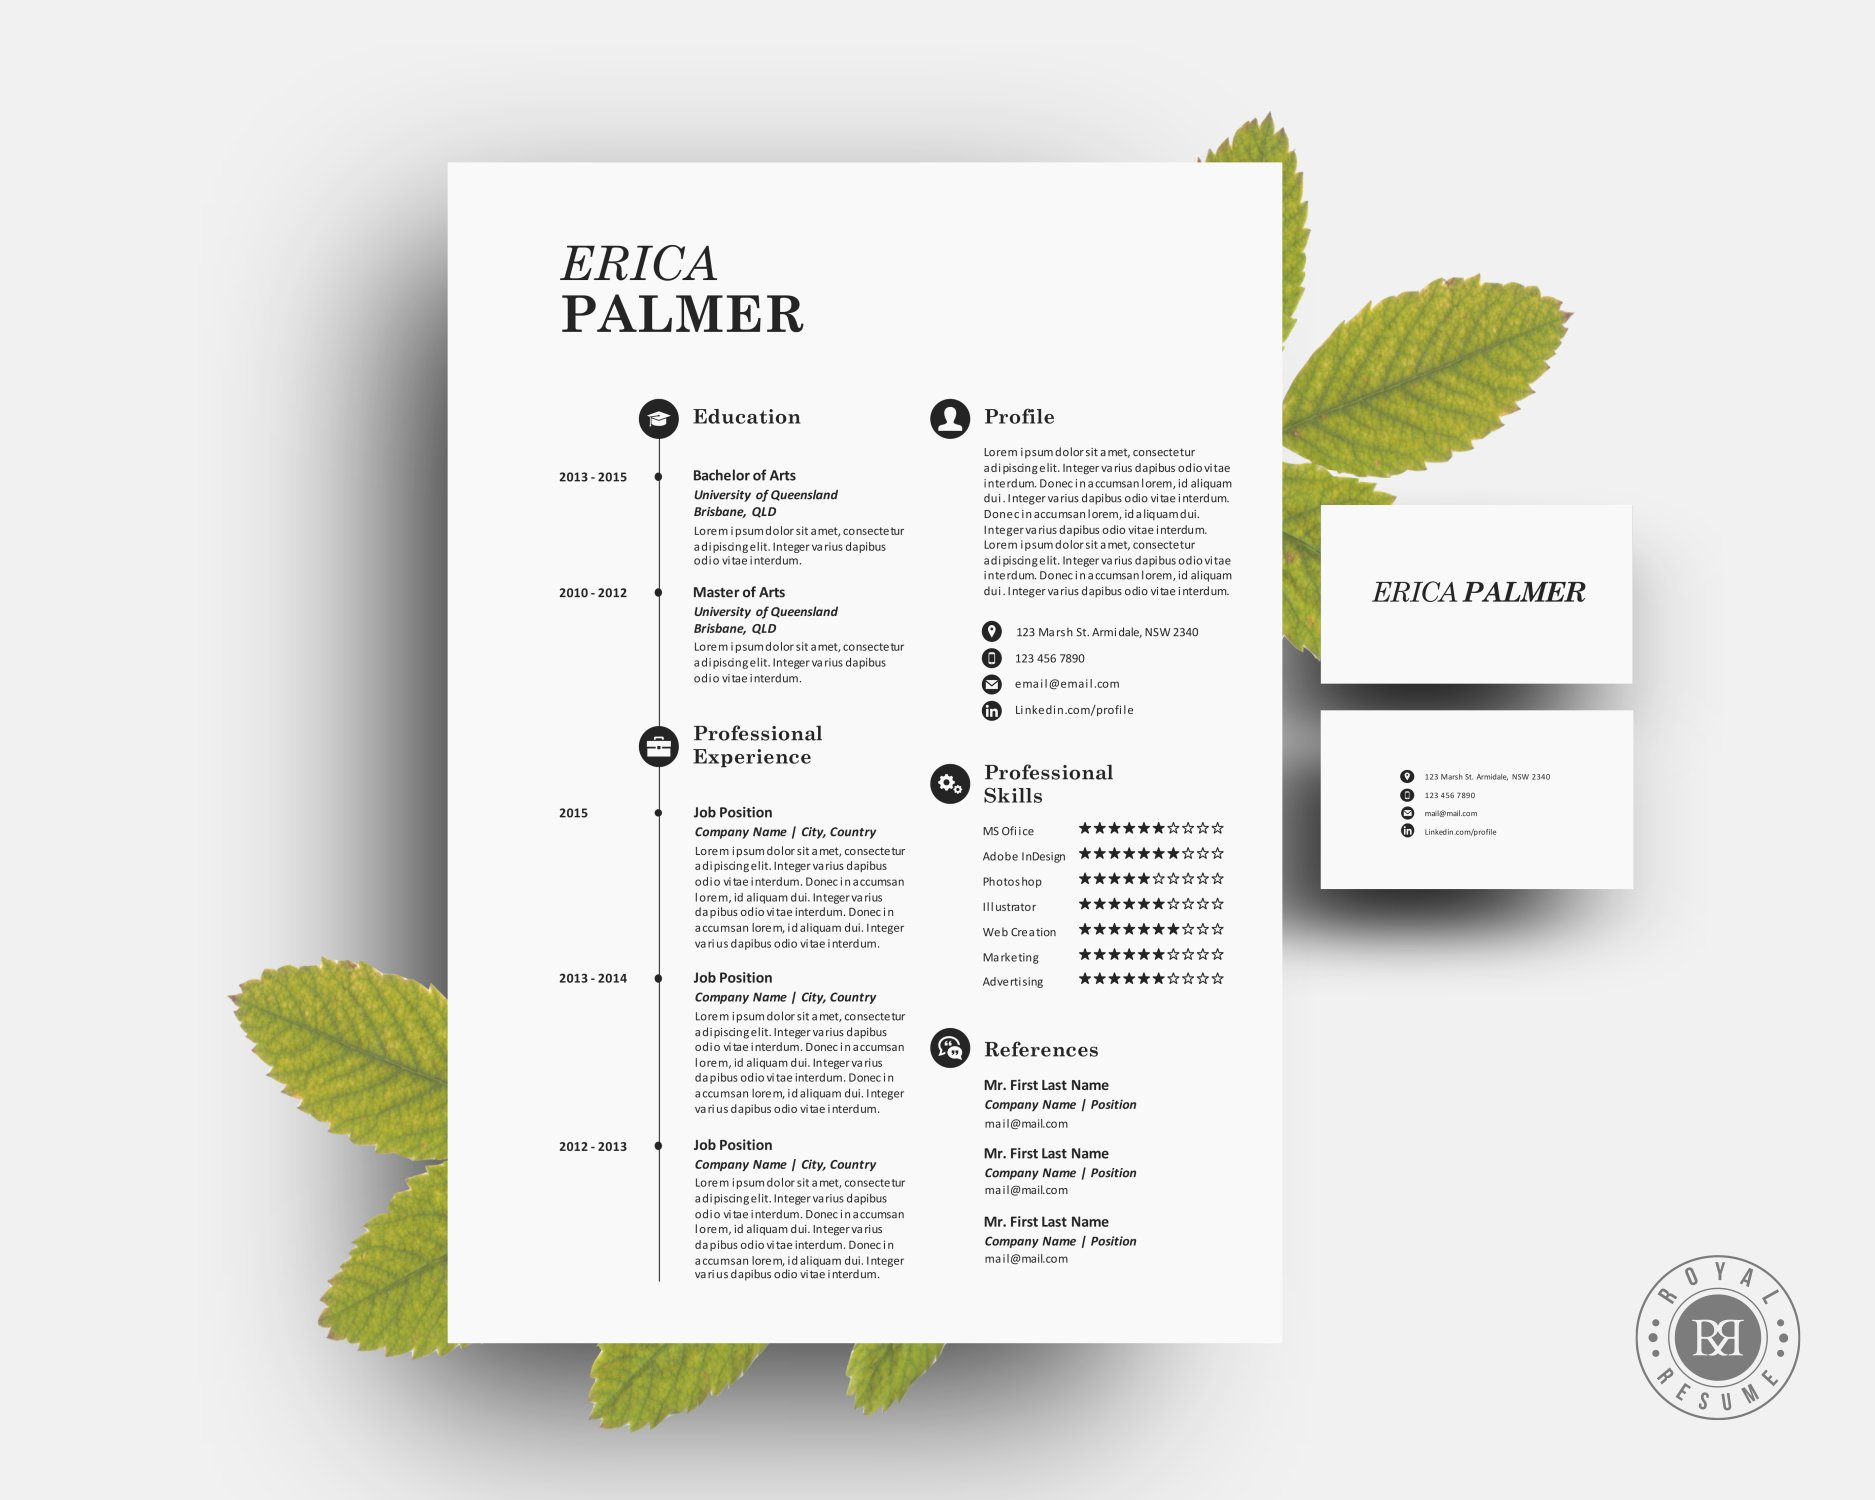 docx resume pack with business card resume templates on creative market